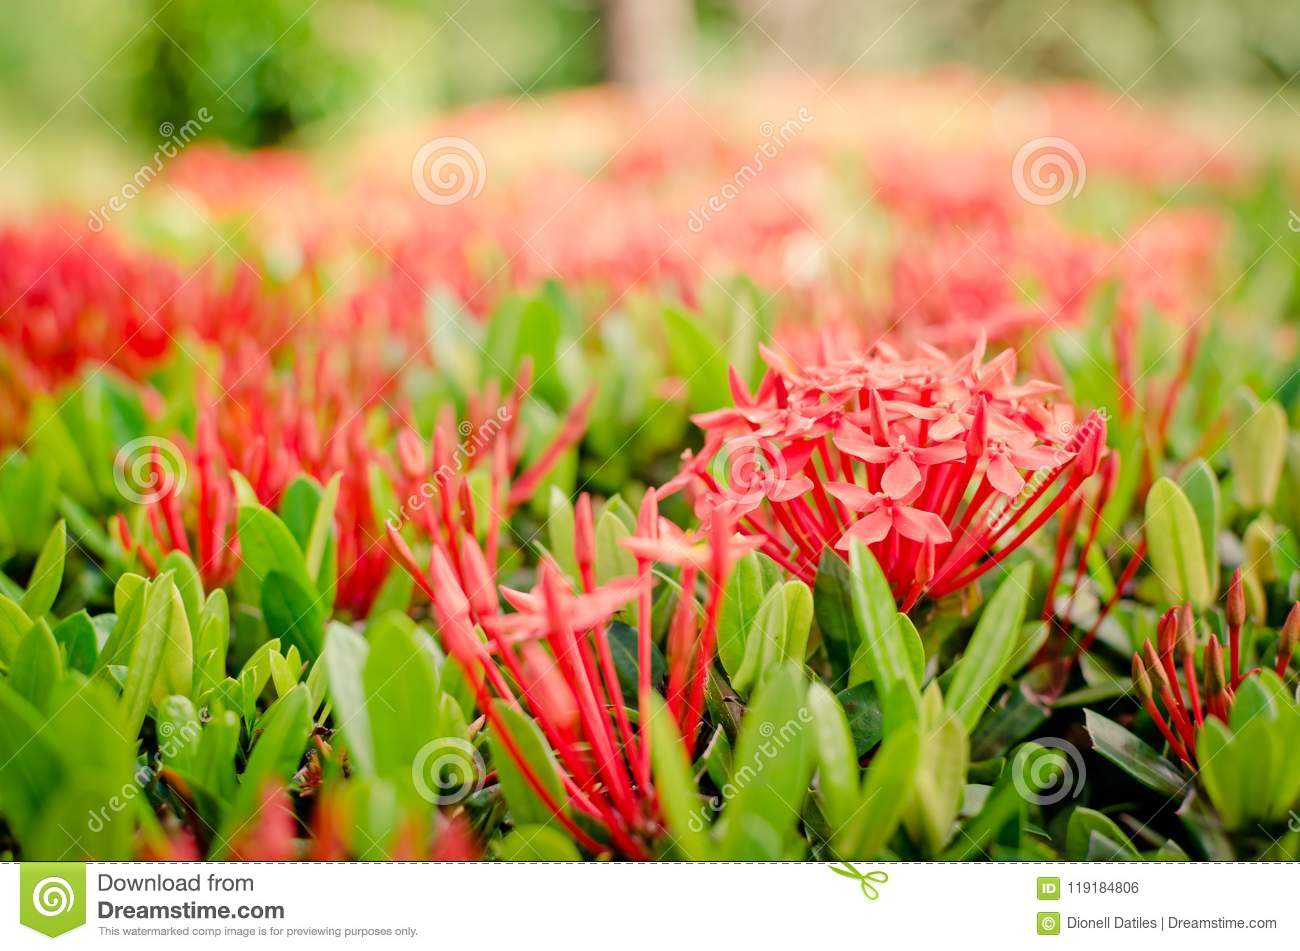 37 Red Santan Plant Photos - Free & Royalty-Free Stock Photos from  Dreamstime